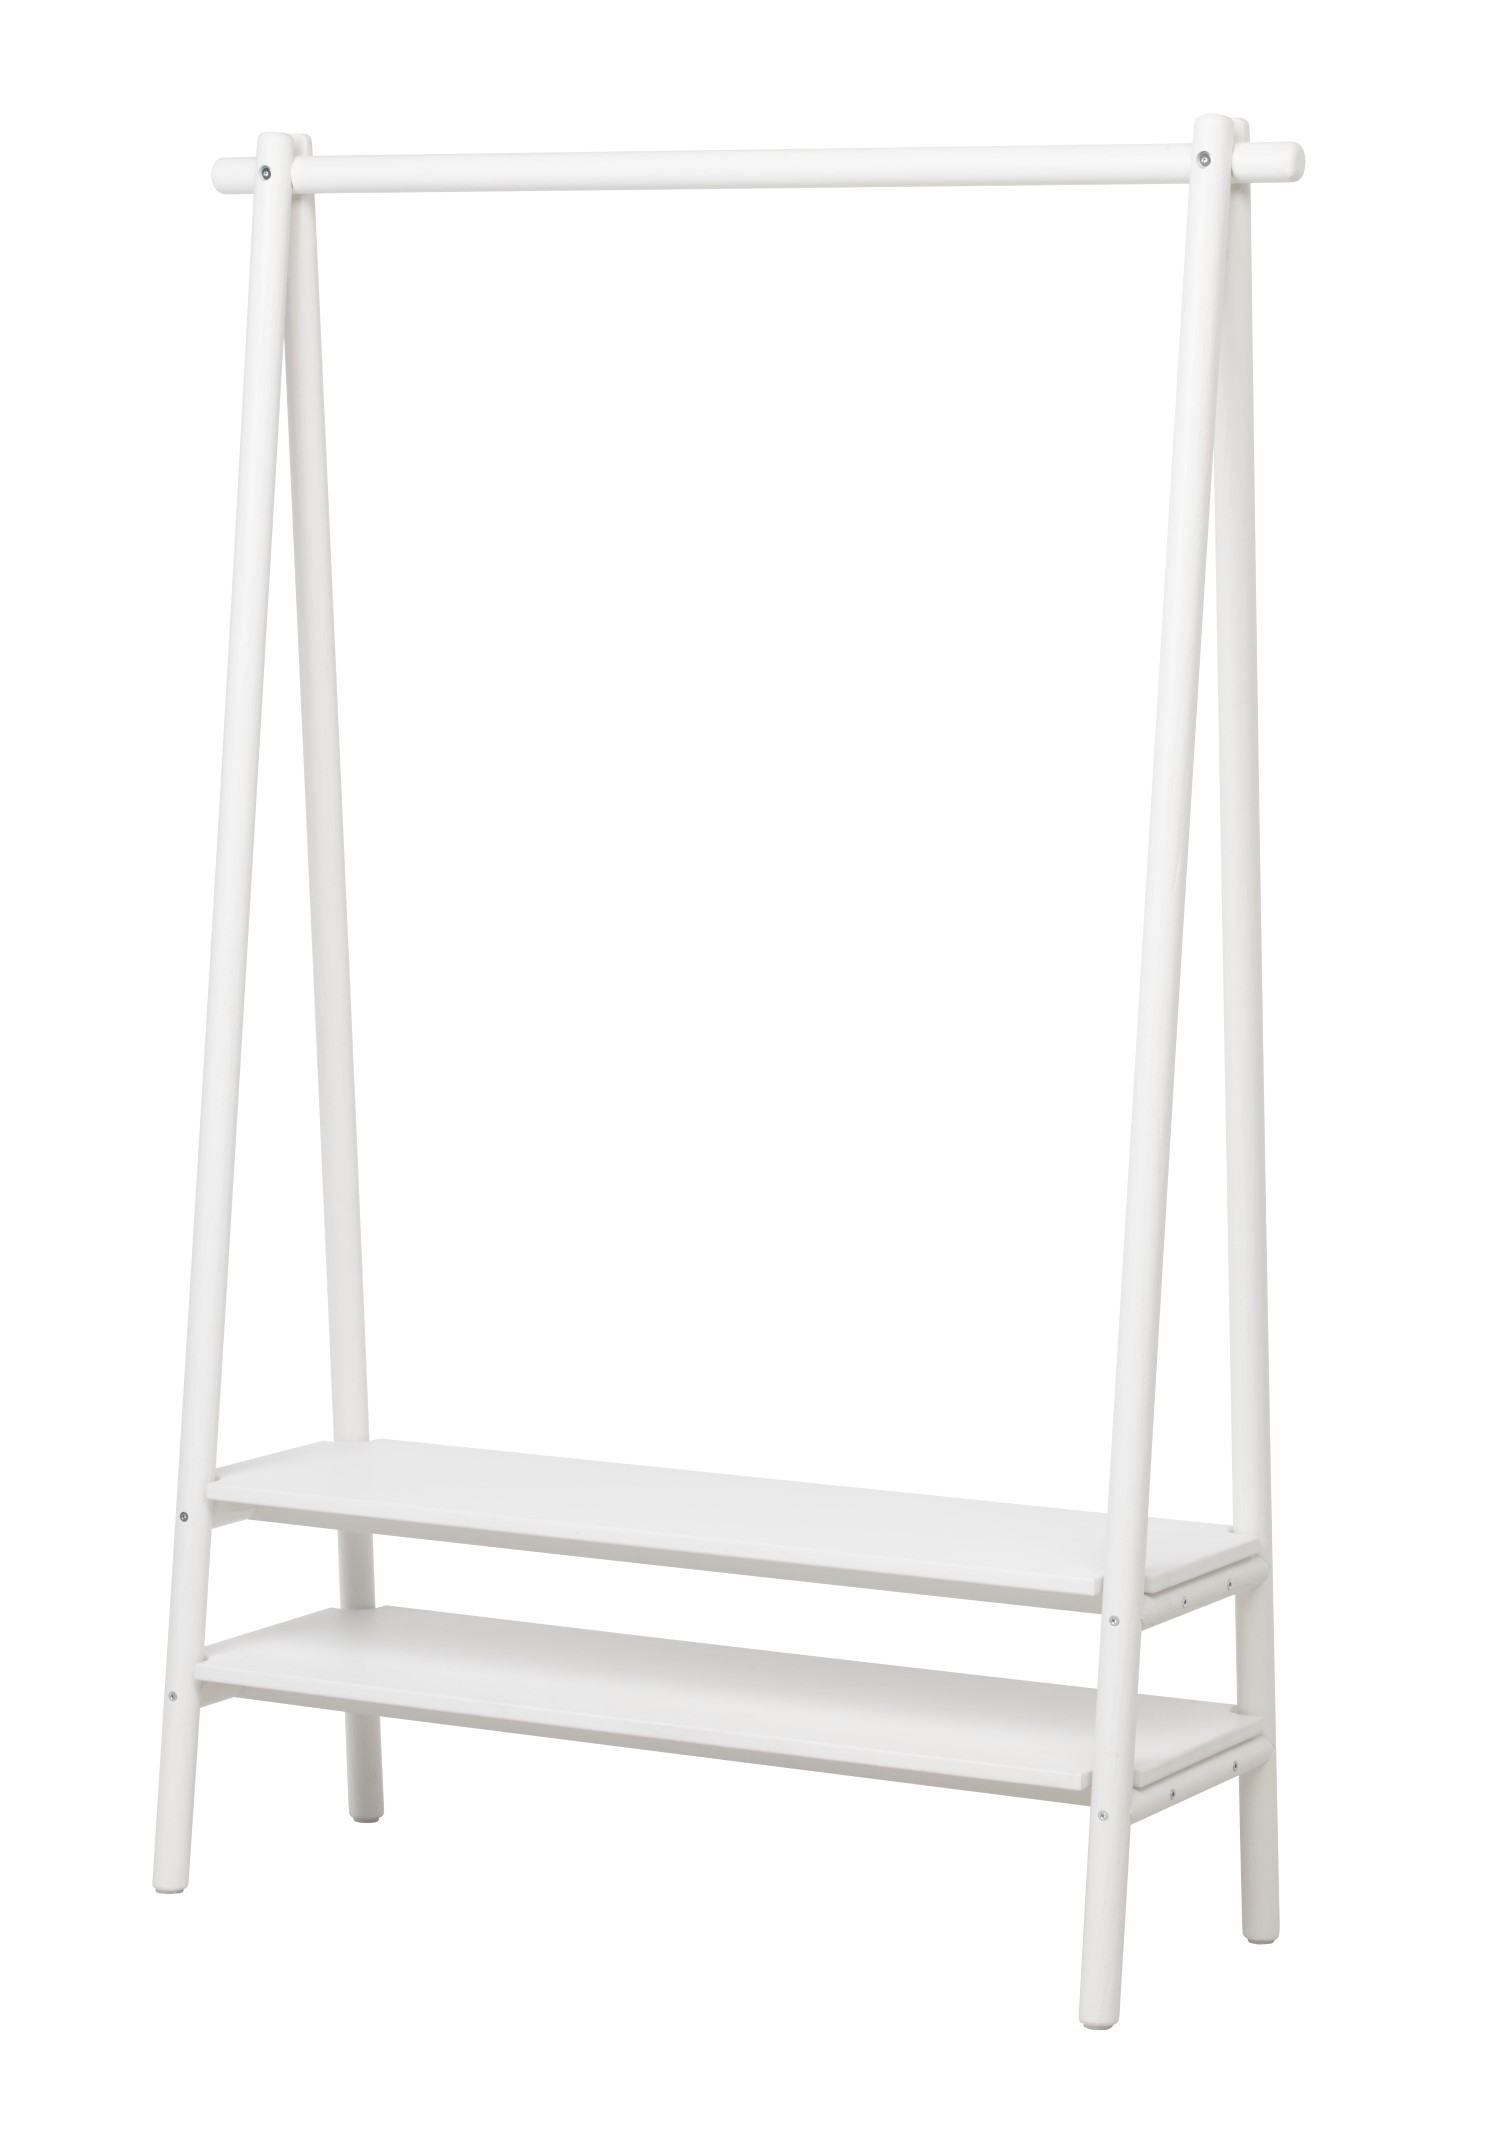 ikea spanst white color rack